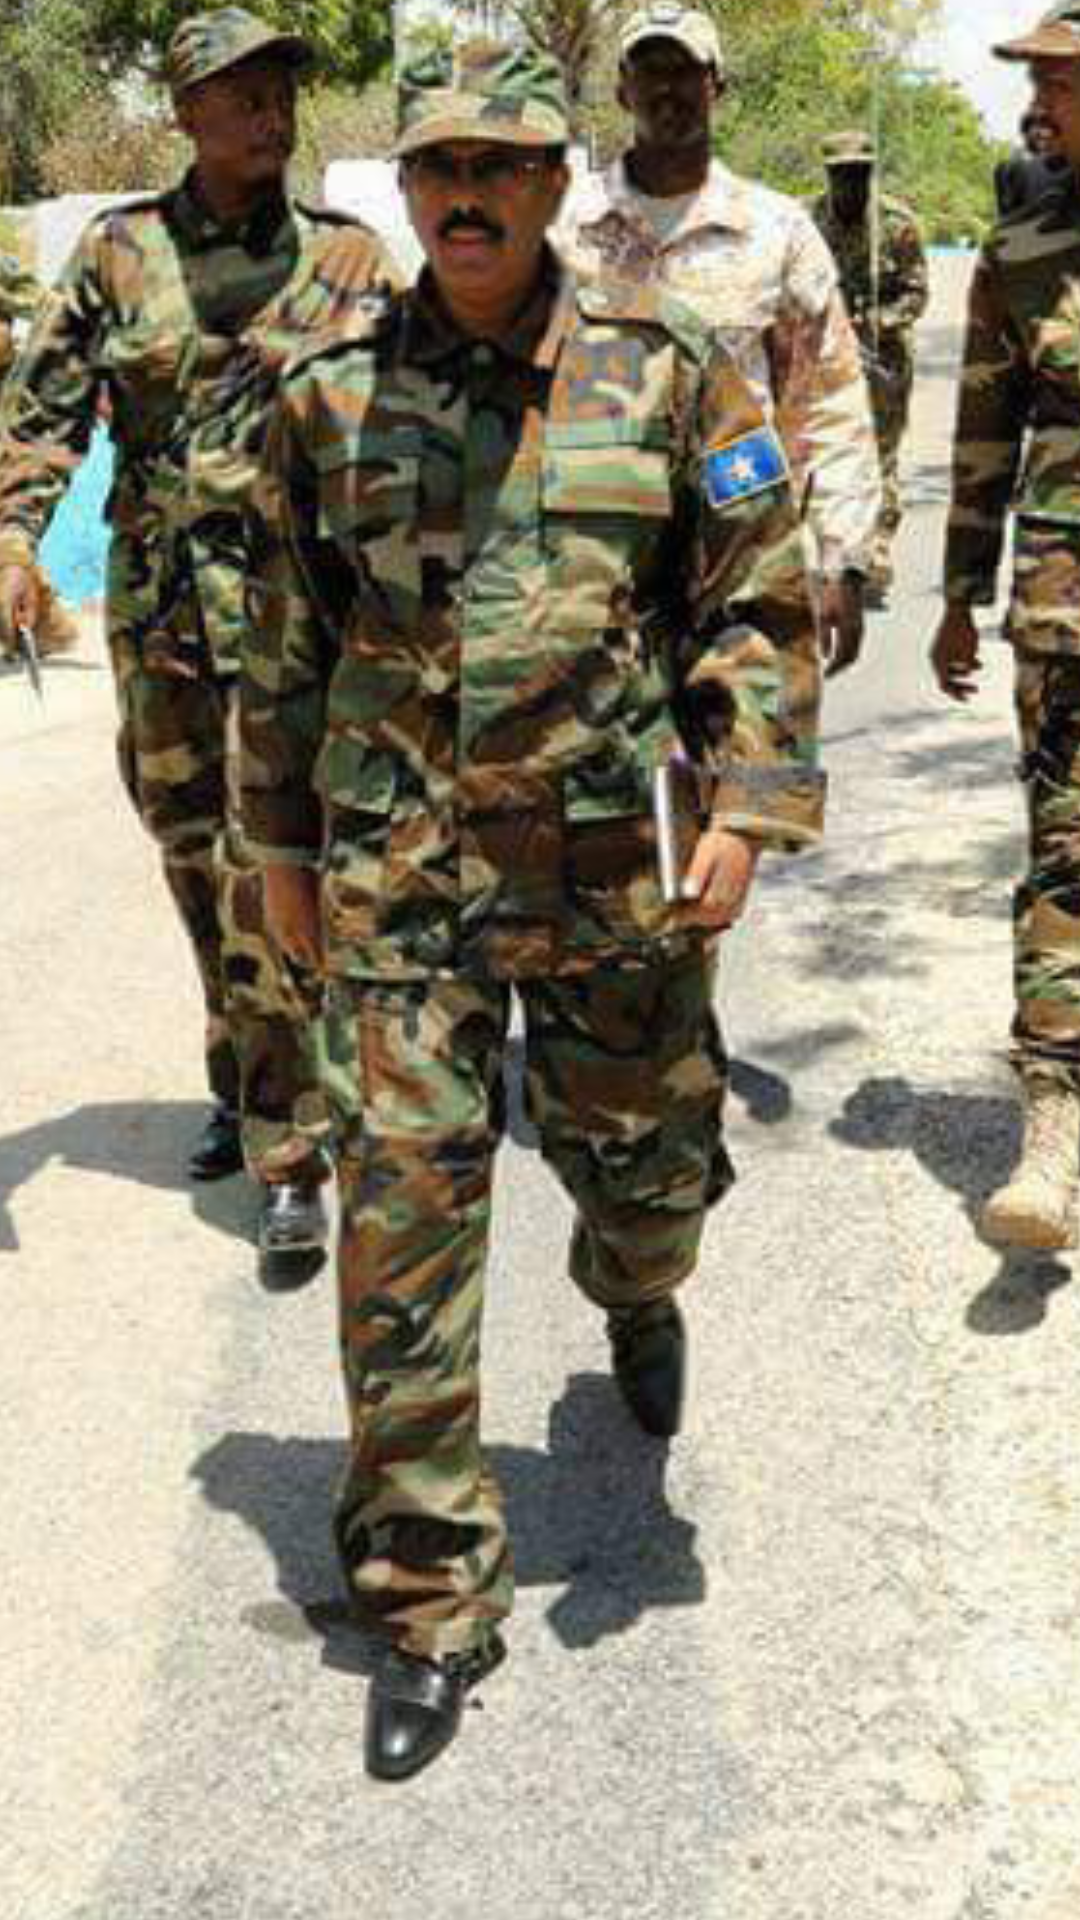 Somali president's honeymoon is over after failed promises, and lies, observers